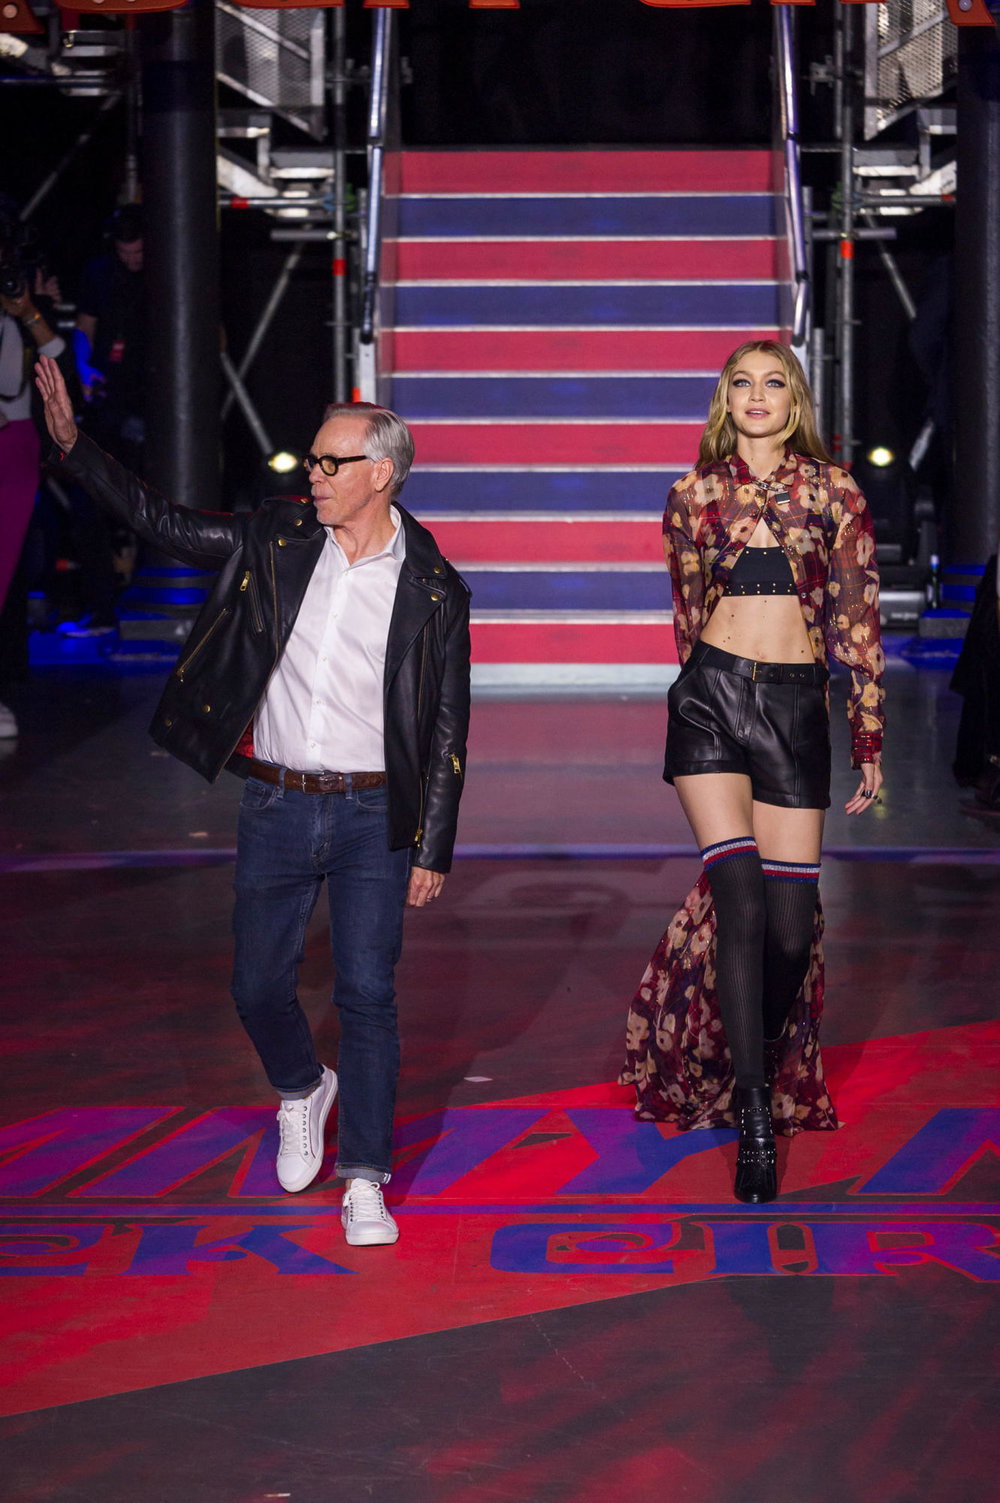 True Vintage worked with Tommy Hilfiger on a pop up shop that featured at London Fashion Week